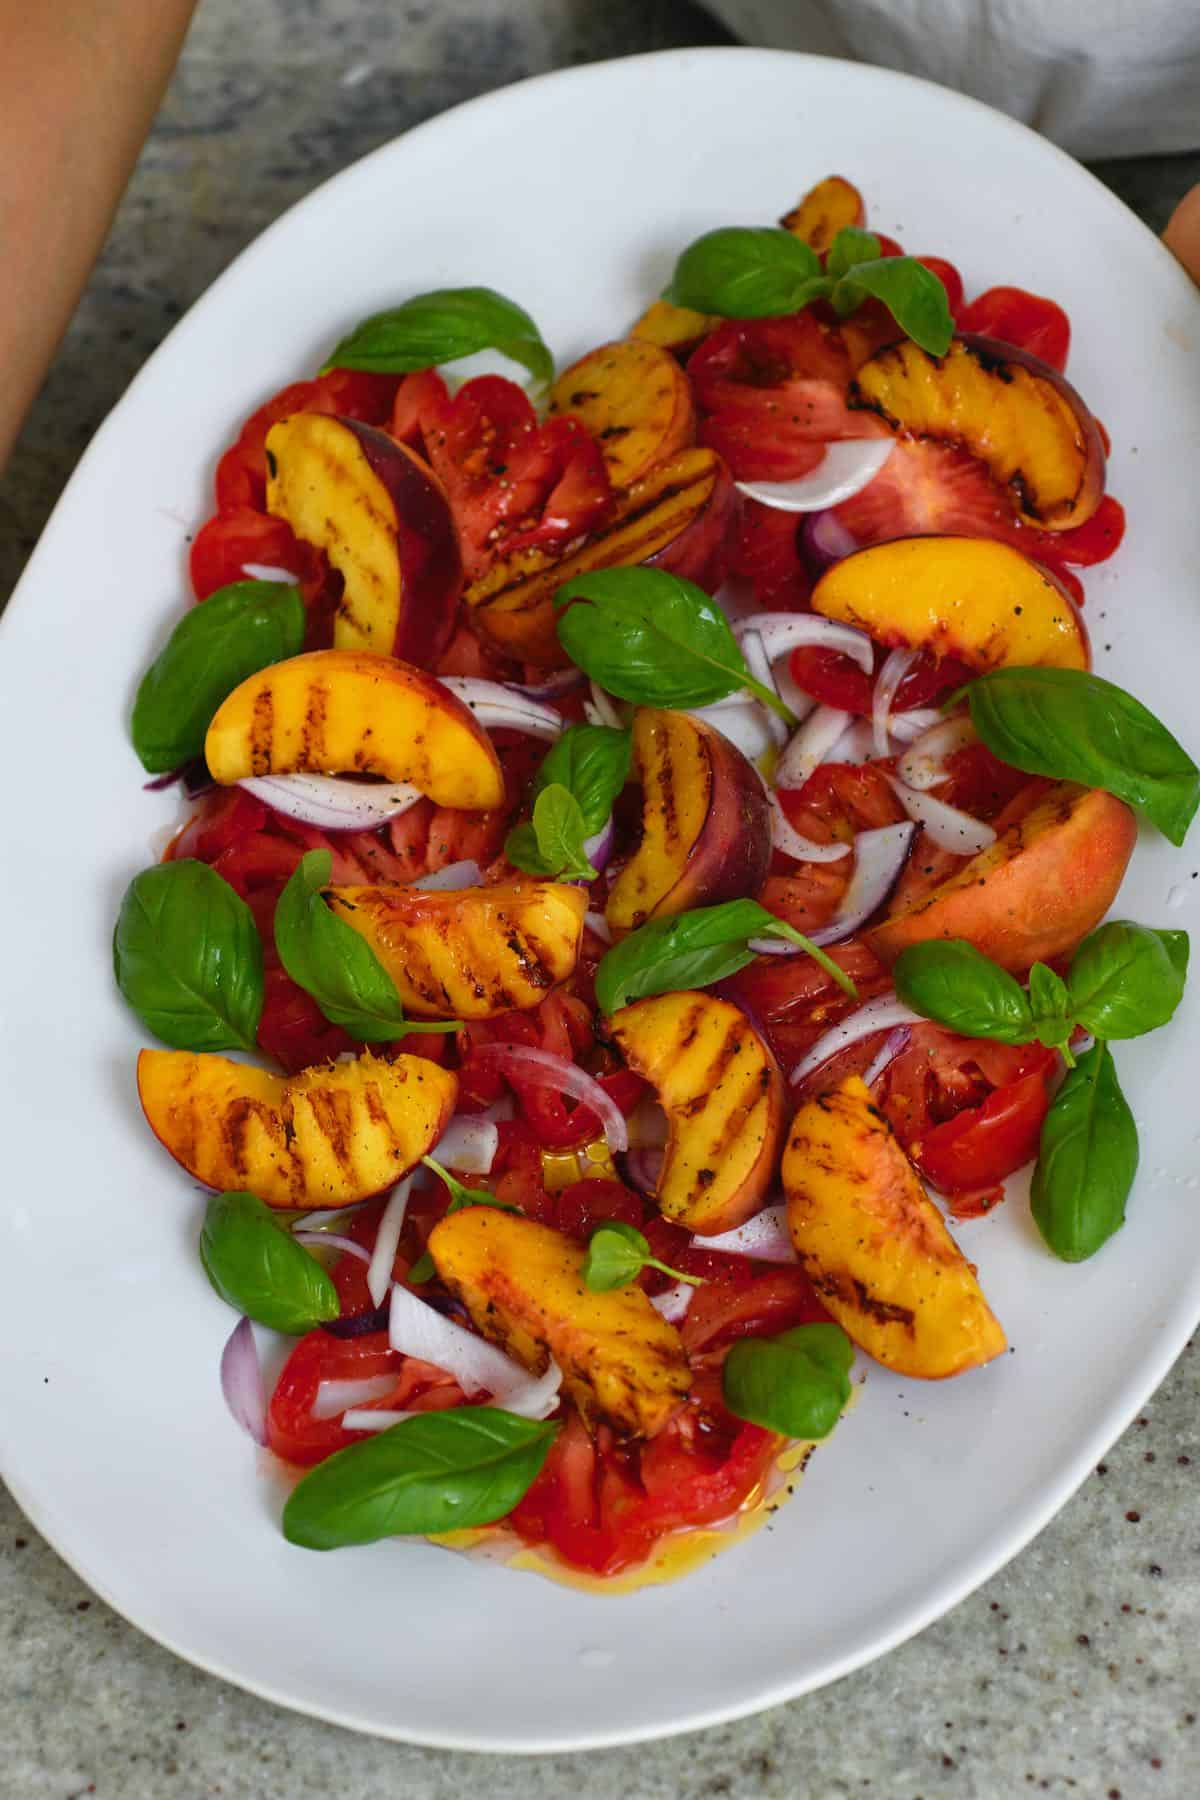 A plate with peach tomato salad